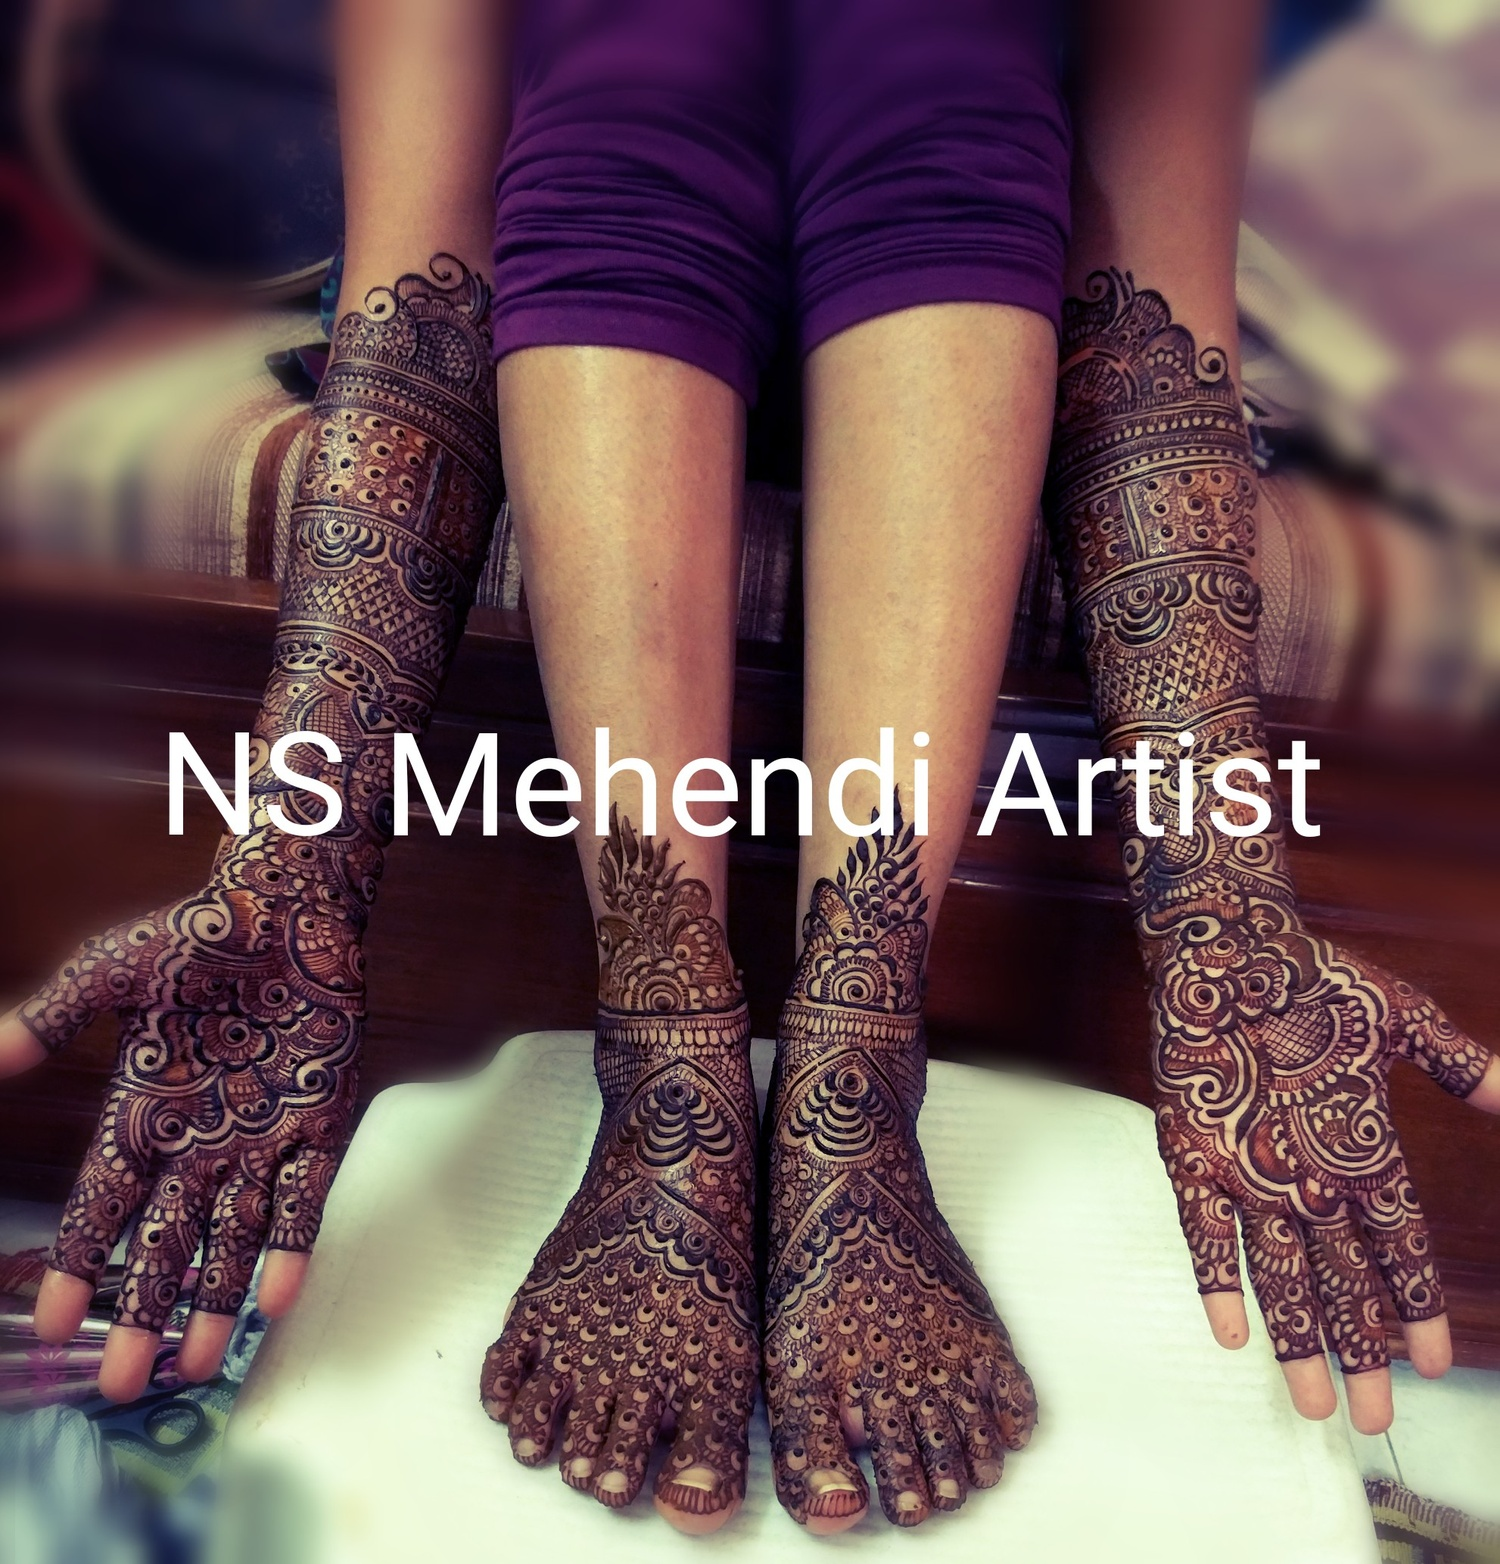 Bridal Mehndi Rates In Chennai : Ns mehndi artist bridal in mumbai weddingz